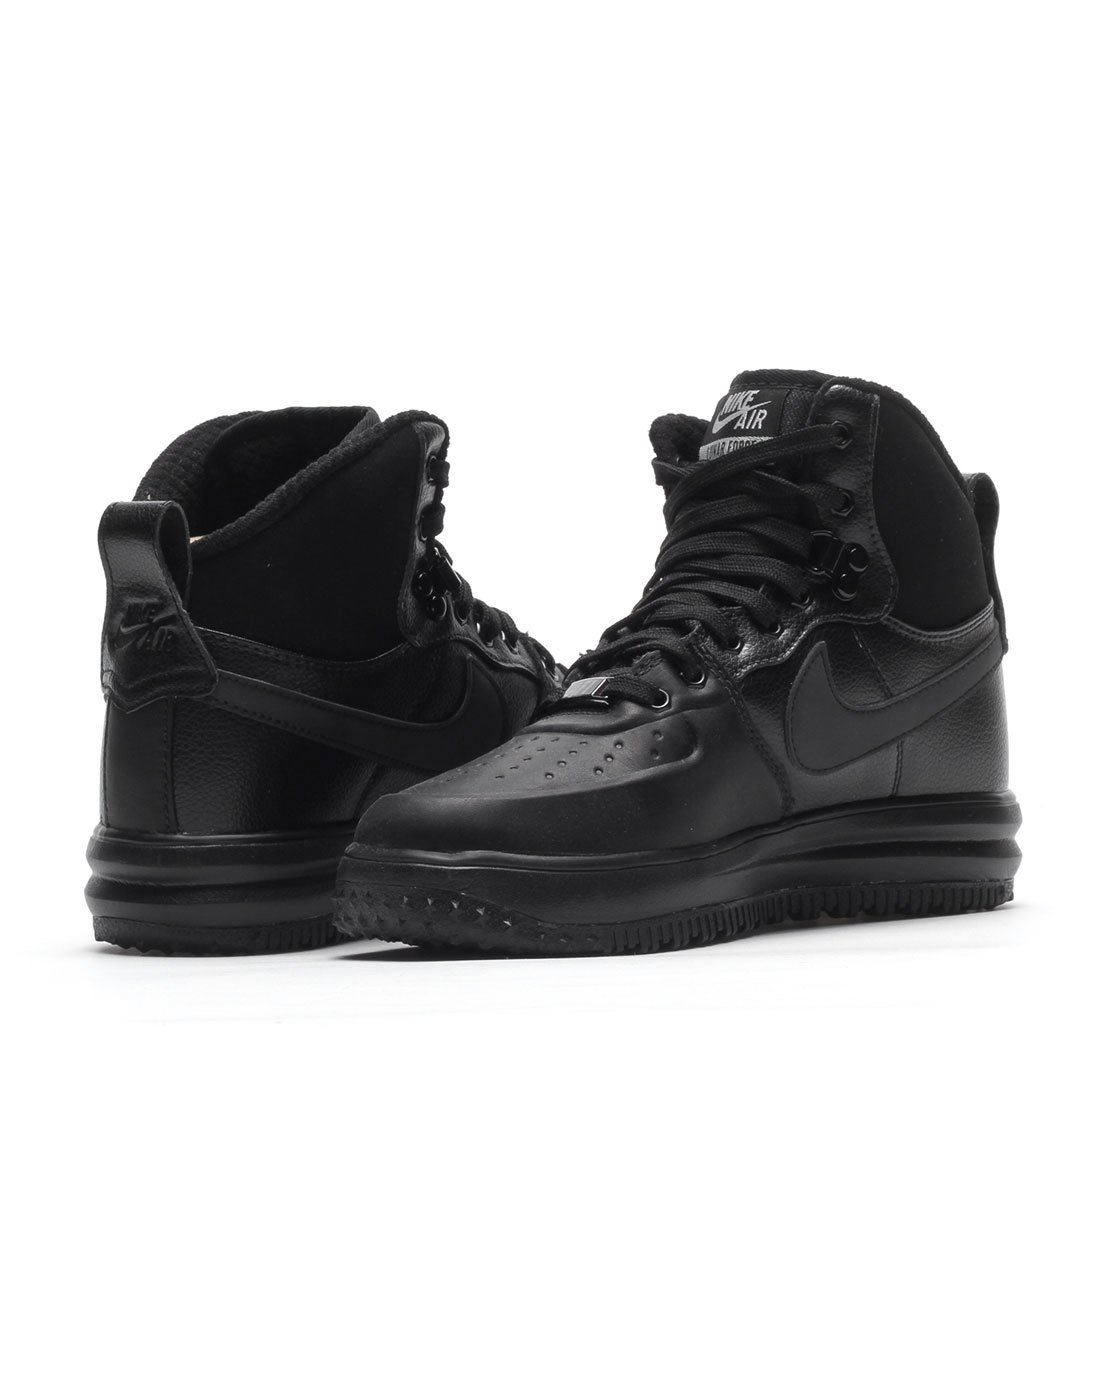 Nike Lunar Force 1 Sneakerboot (GS) Black/Black-Metallic Silver (4.5Y) by Nike (Image #3)